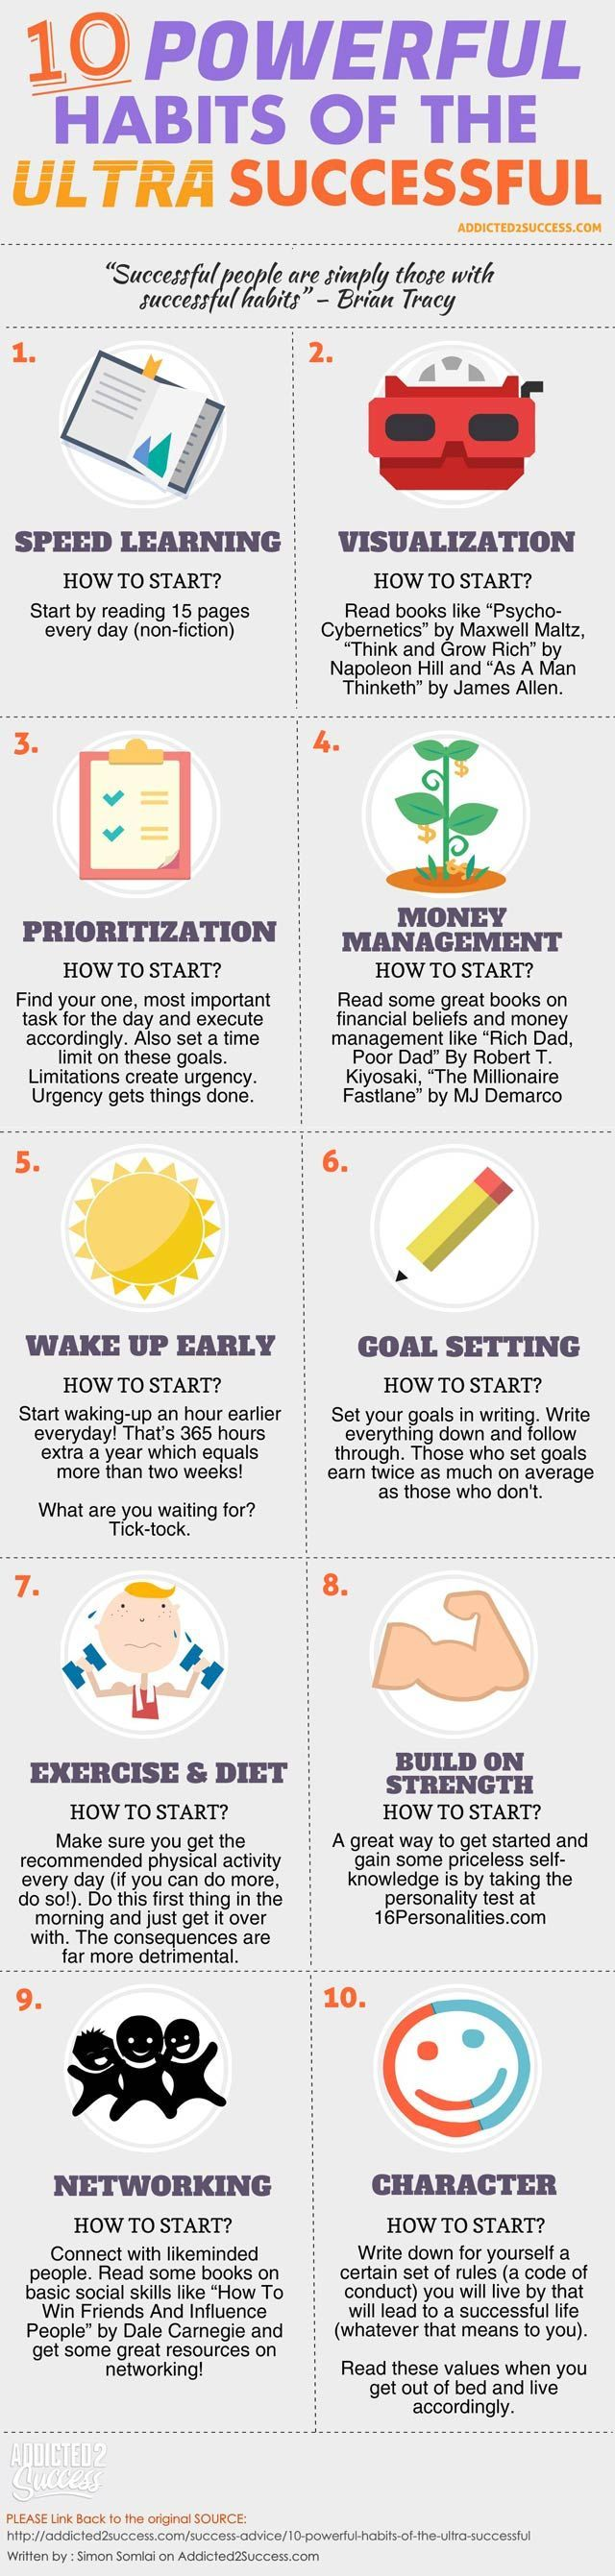 10 Powerful Habits of Ultra Successful People www.lifehack.org/... (Featured photo credit: addicted2success.com via addicted2success.com)